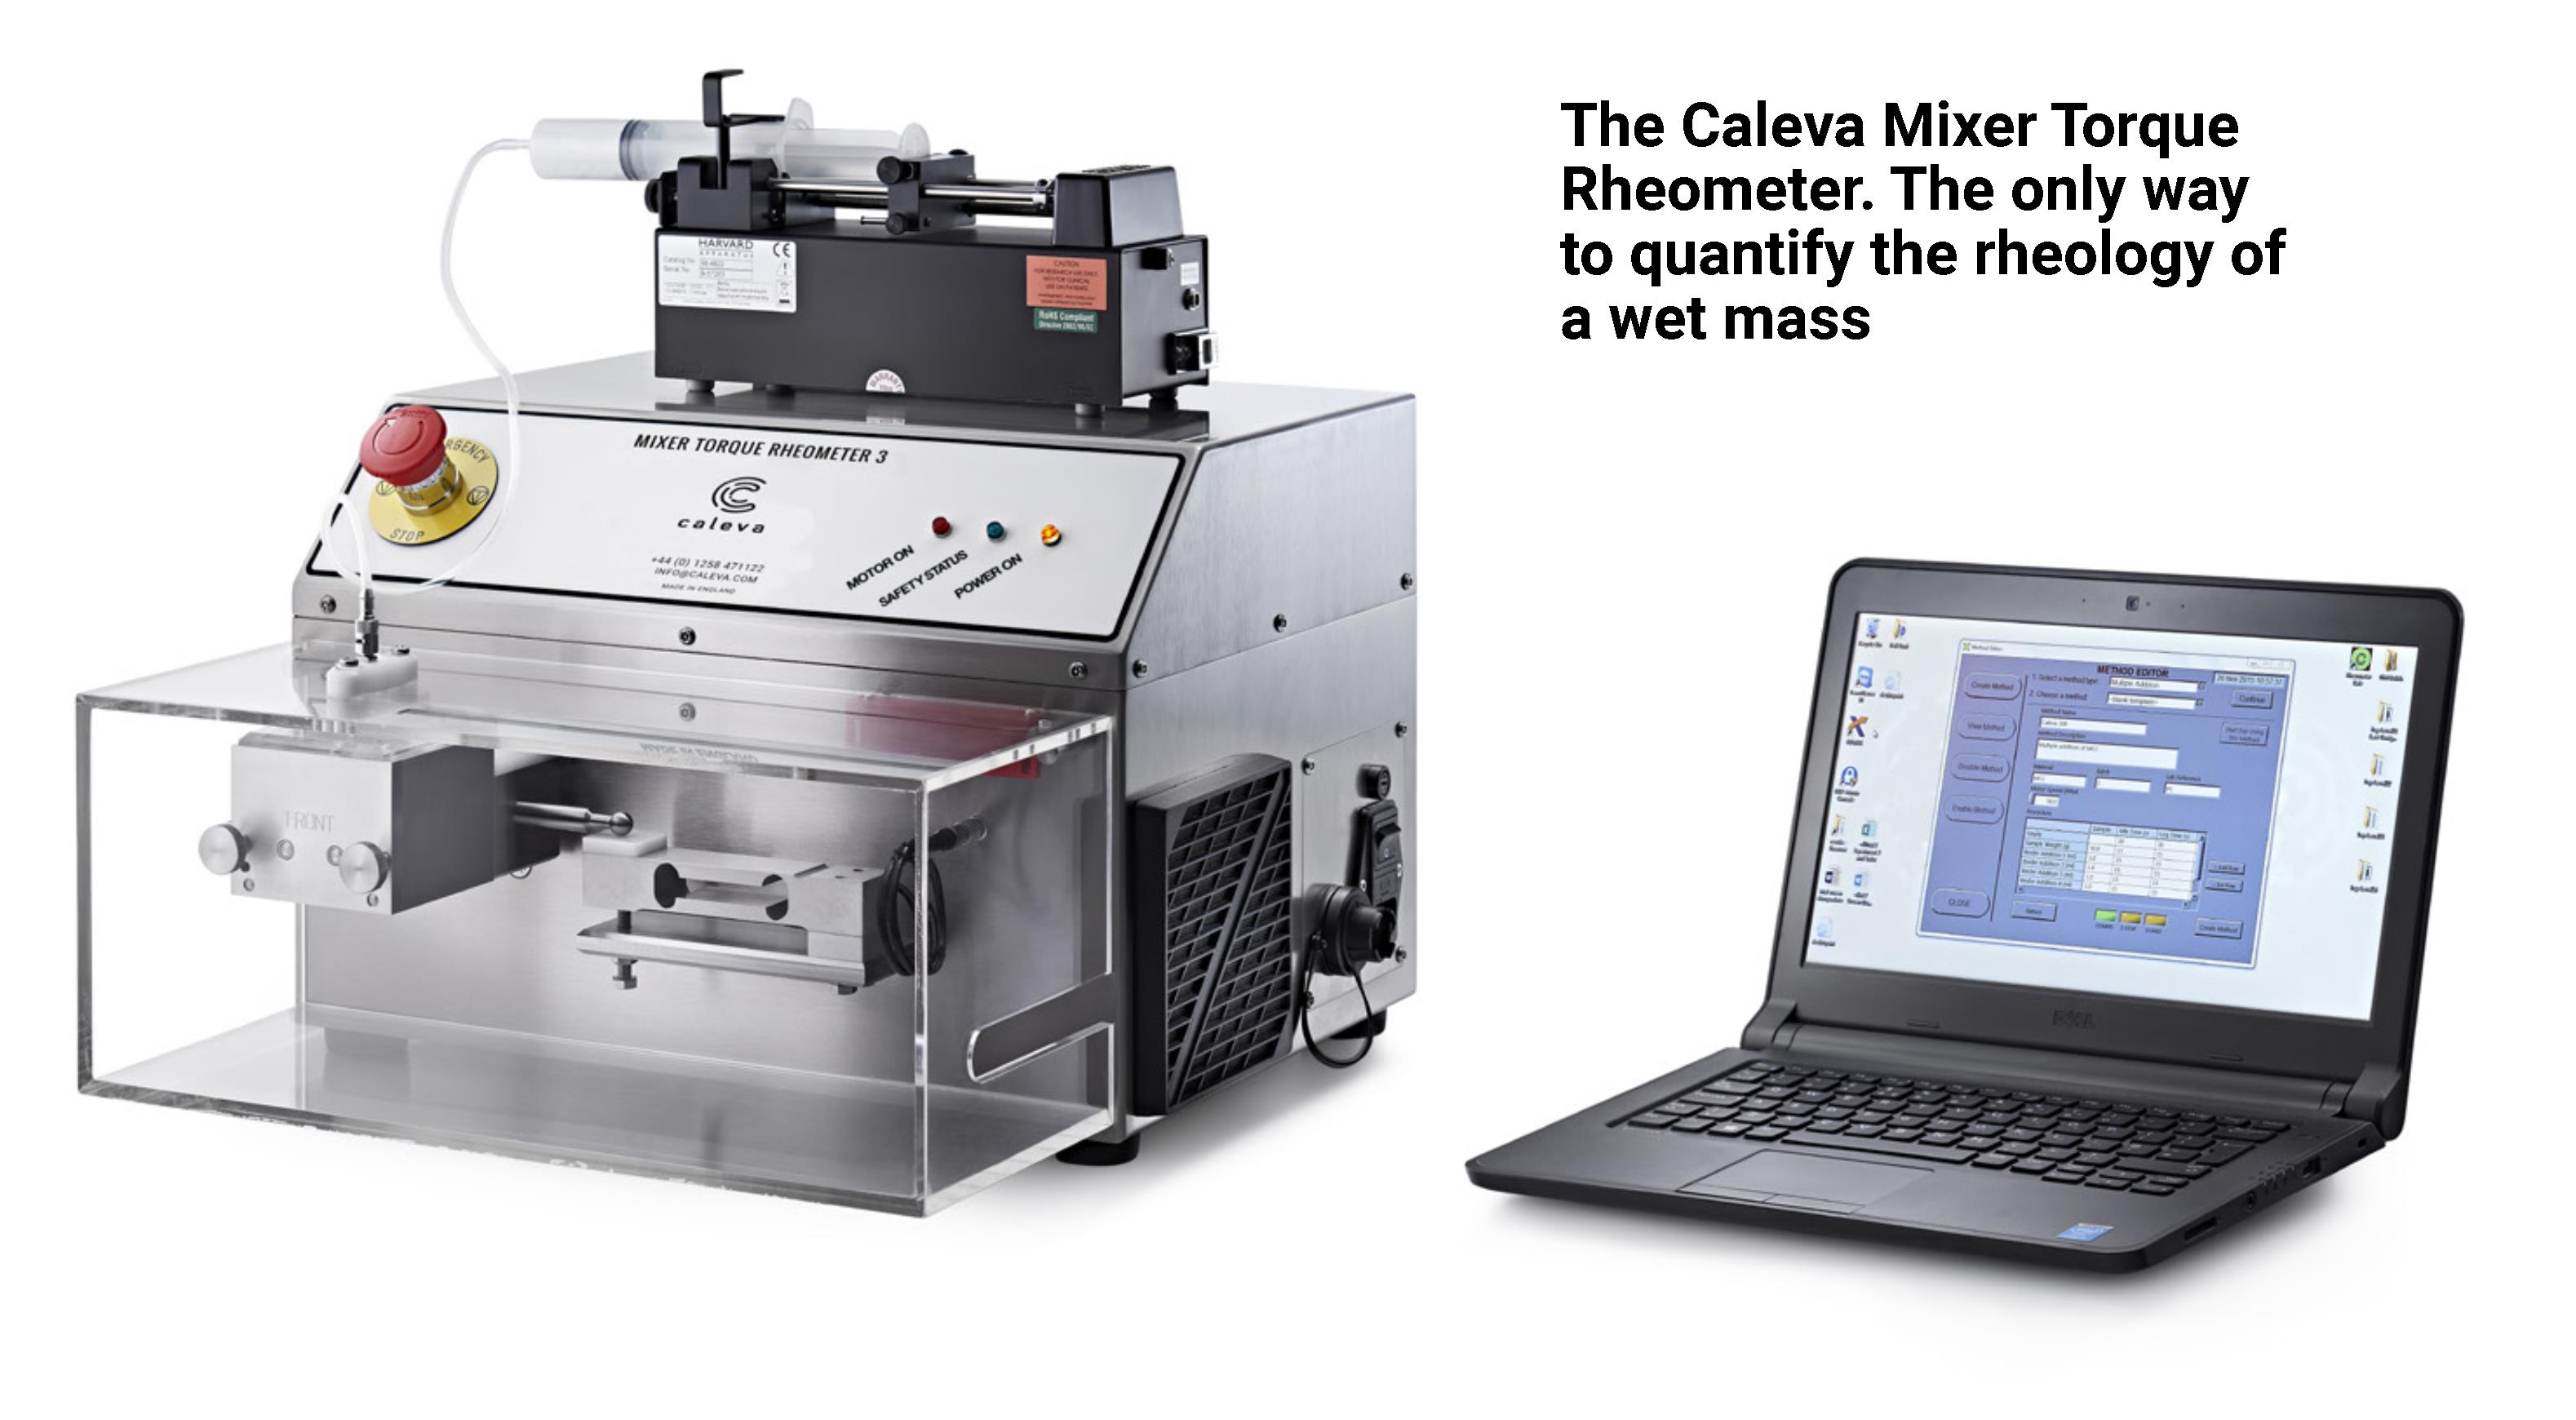 The Caleva Mixer Torque Rheometer - the only way to quantify the rheology of a wet mass